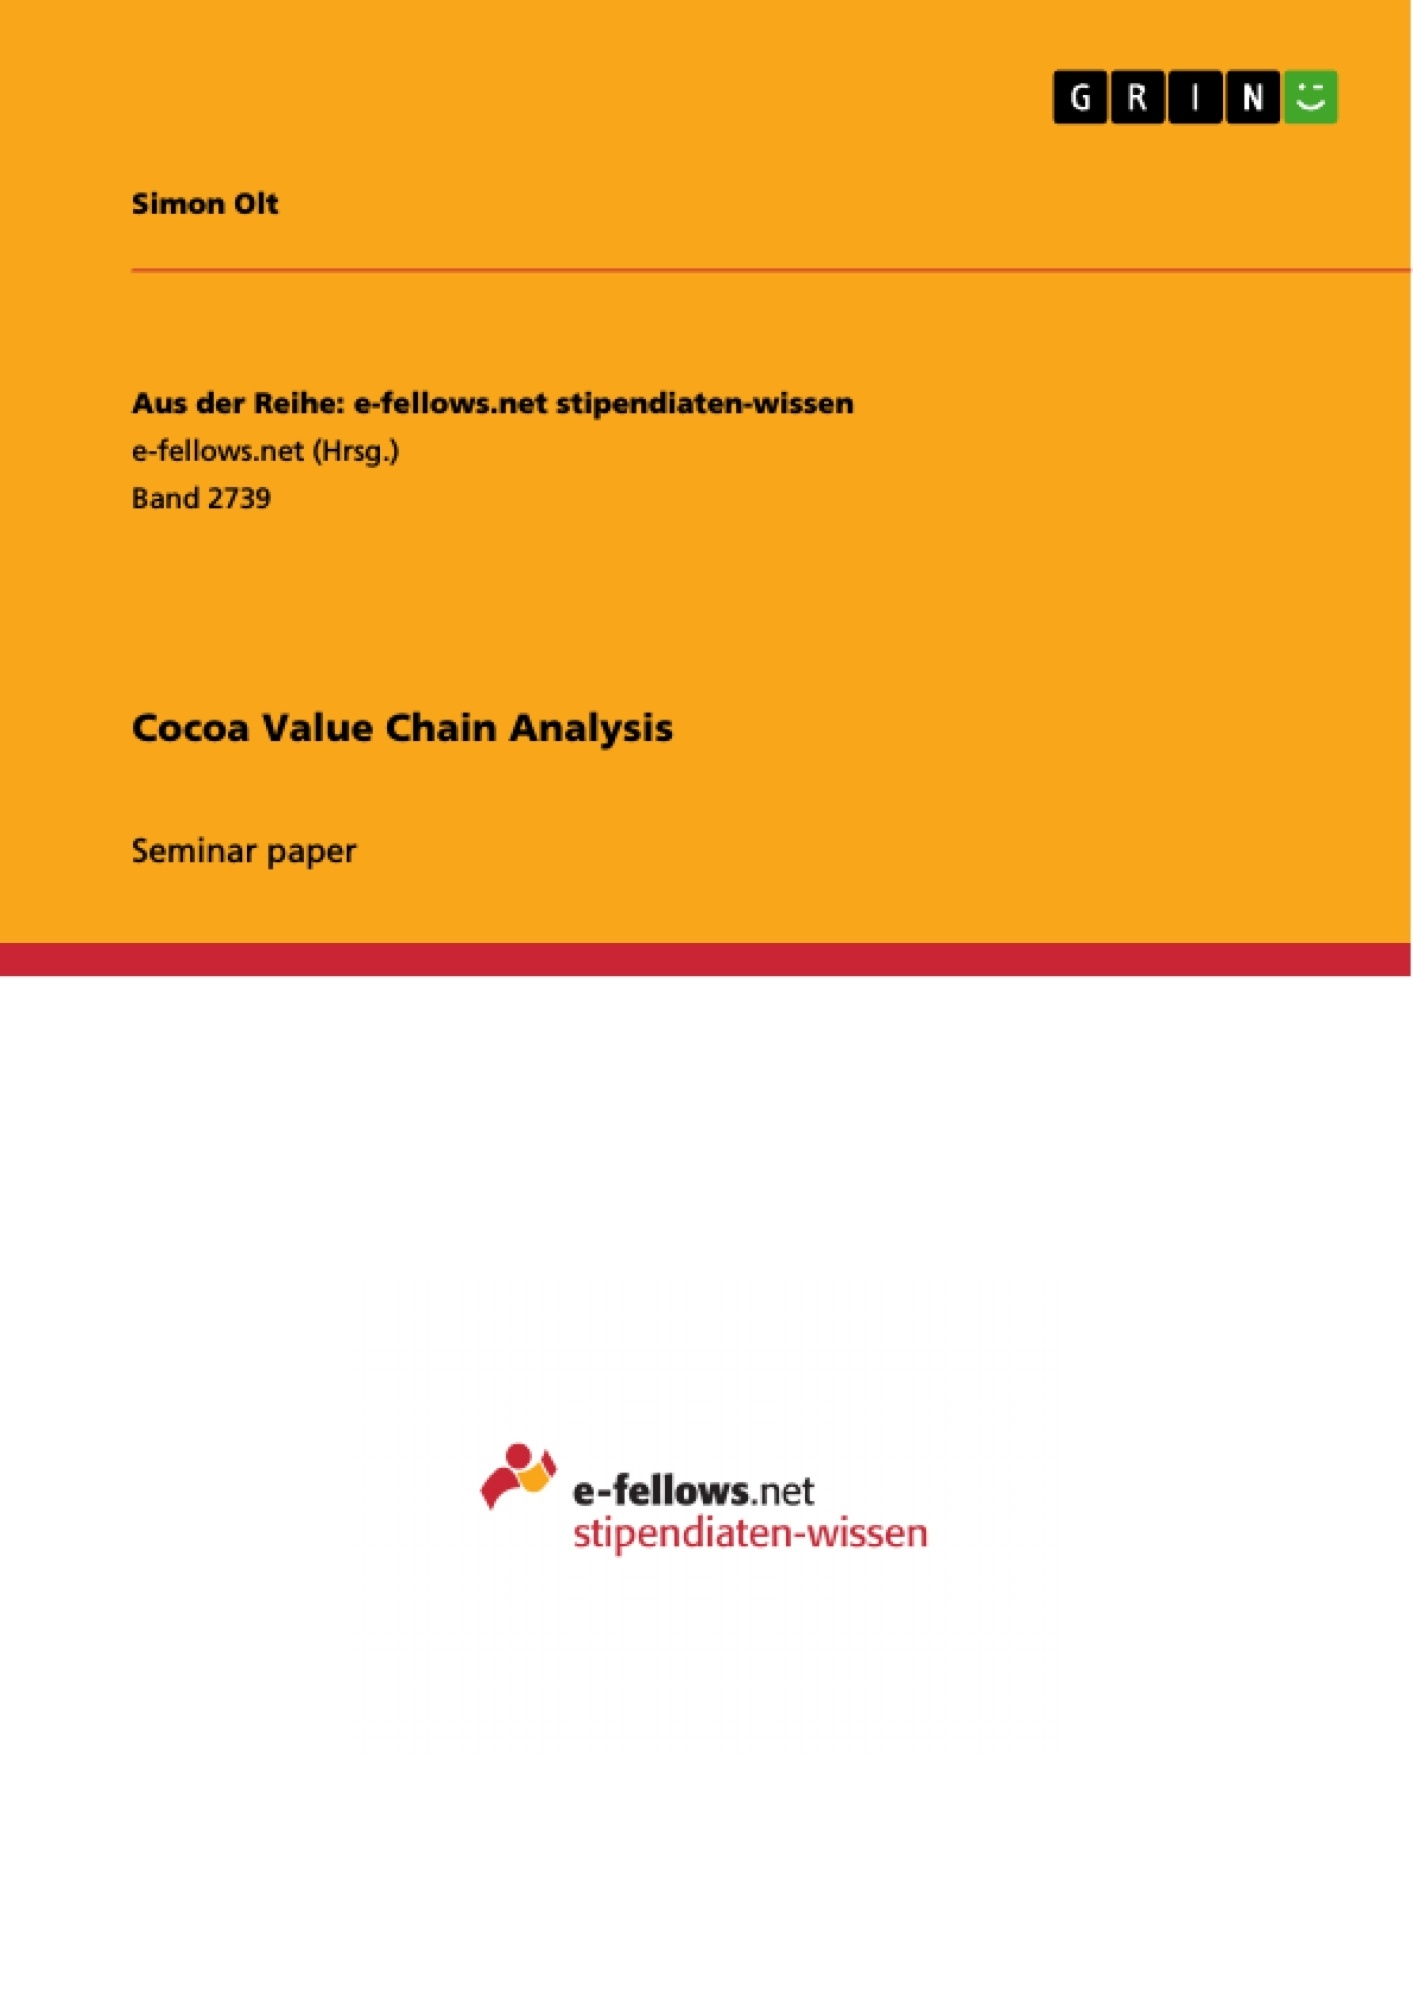 Title: Cocoa Value Chain Analysis